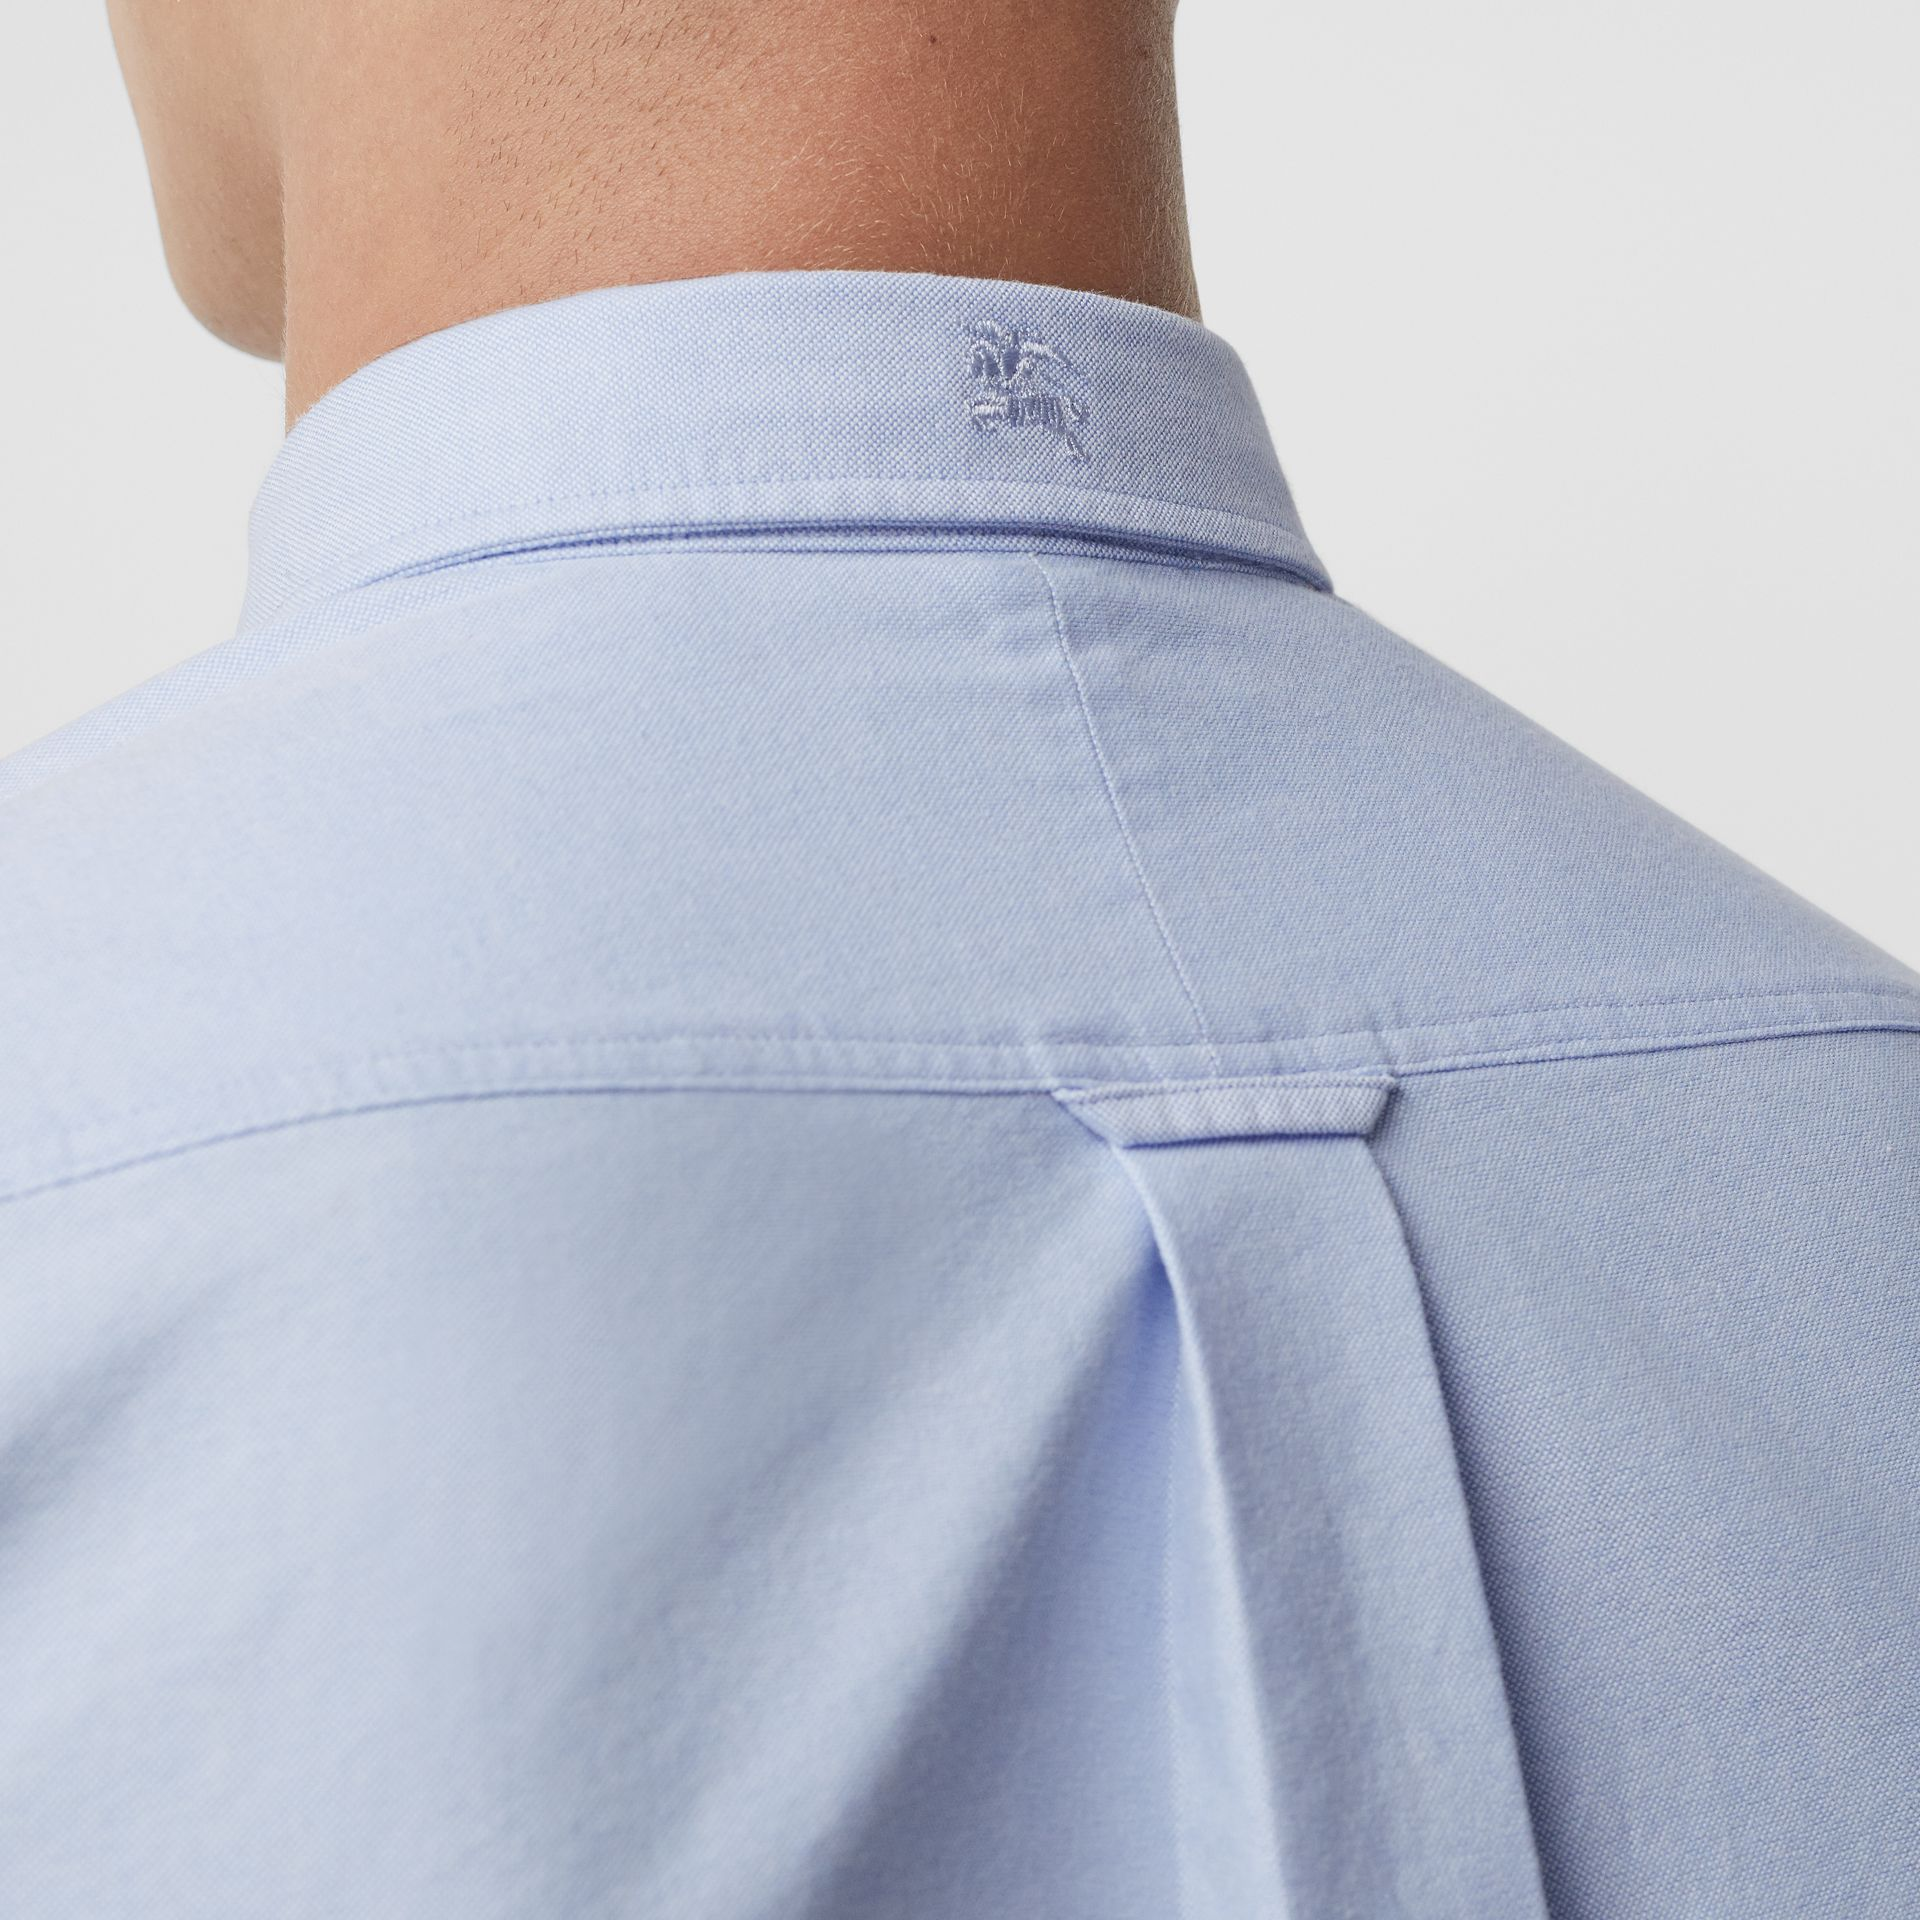 Check Cuff Cotton Oxford Shirt in Cornflower Blue - Men | Burberry Hong Kong - gallery image 4